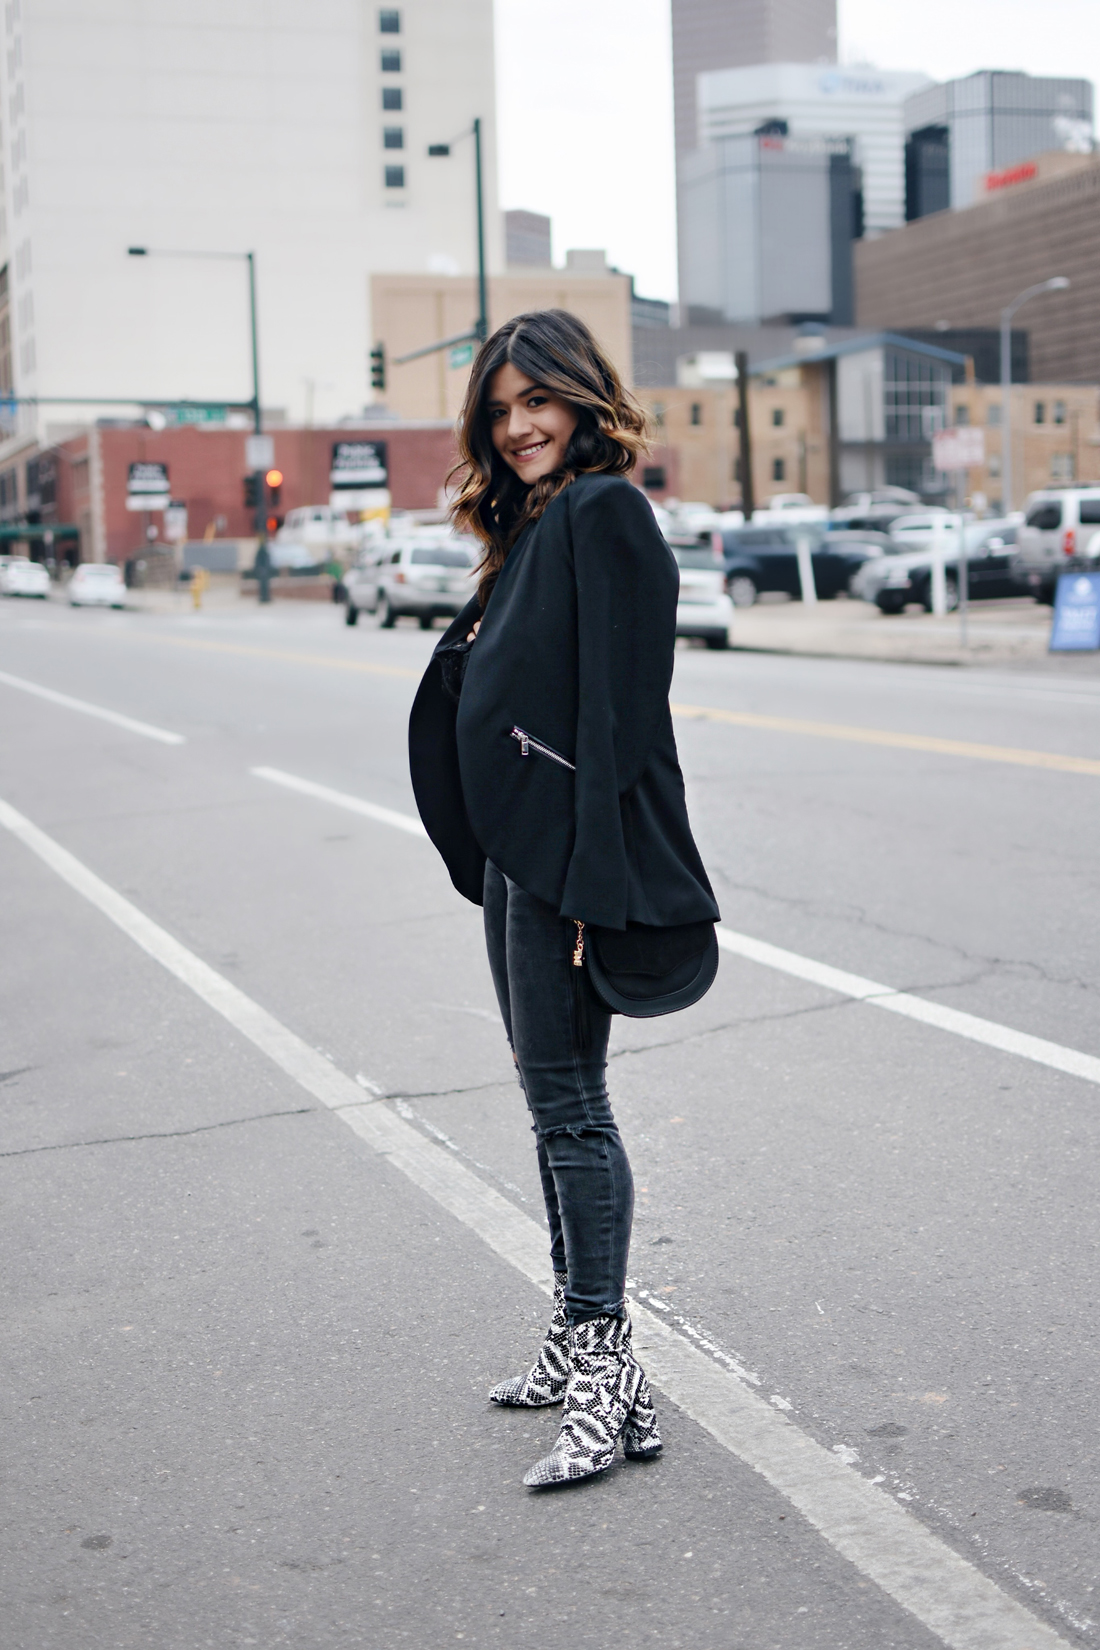 Carolina Hellal of Chic Talk wearing an Asos black lace top, Madewell jeans, Public Desire snake print boots, BCBG blazer